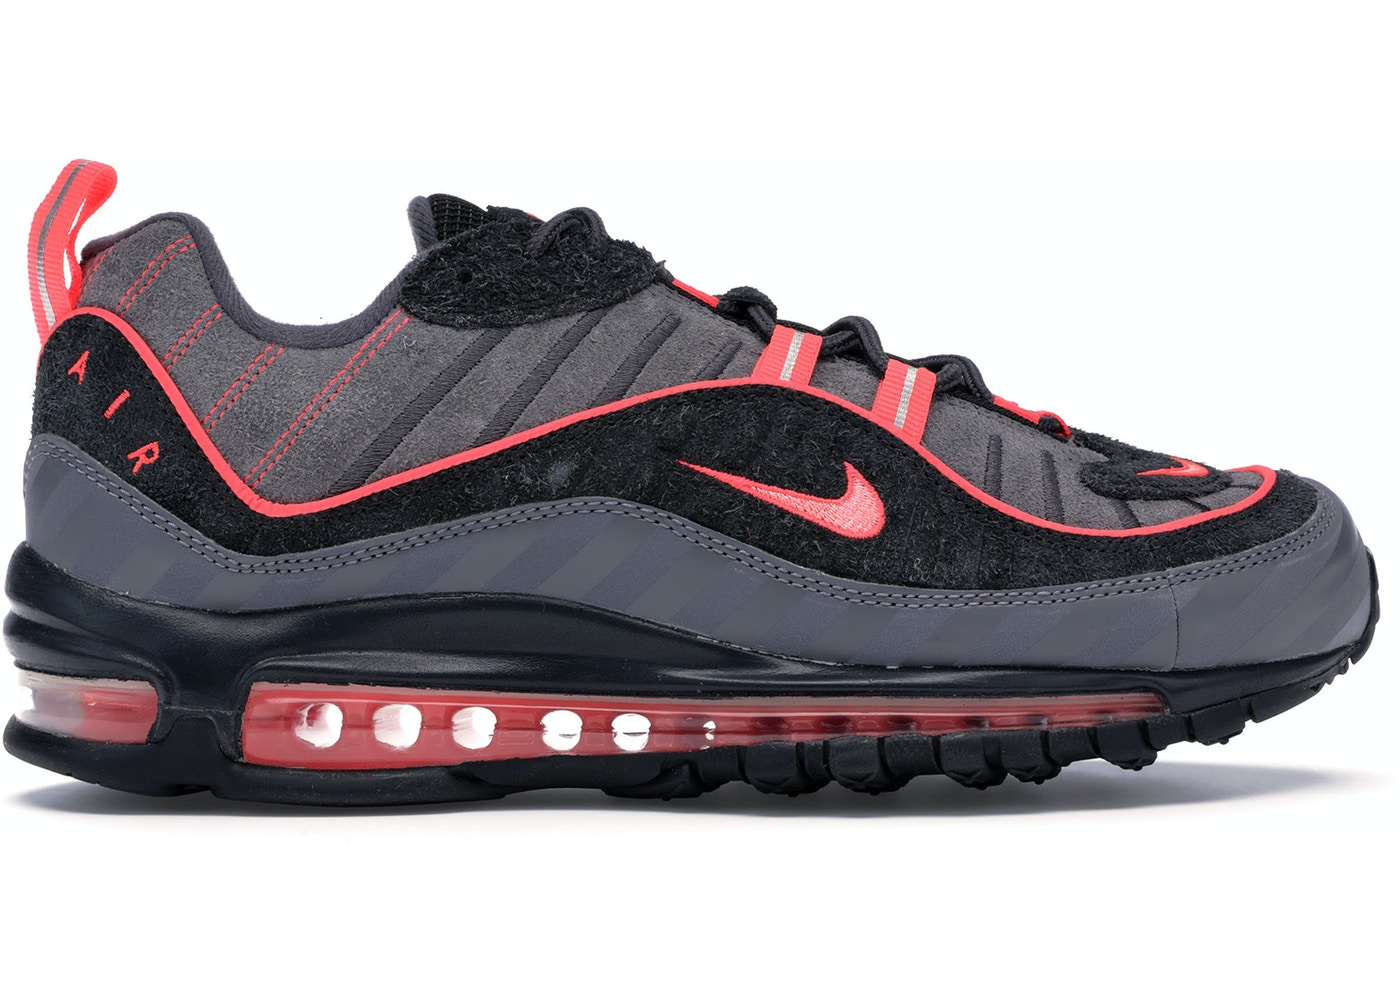 new style 28096 1d47b Buy Nike Air Max 98 Shoes & Deadstock Sneakers